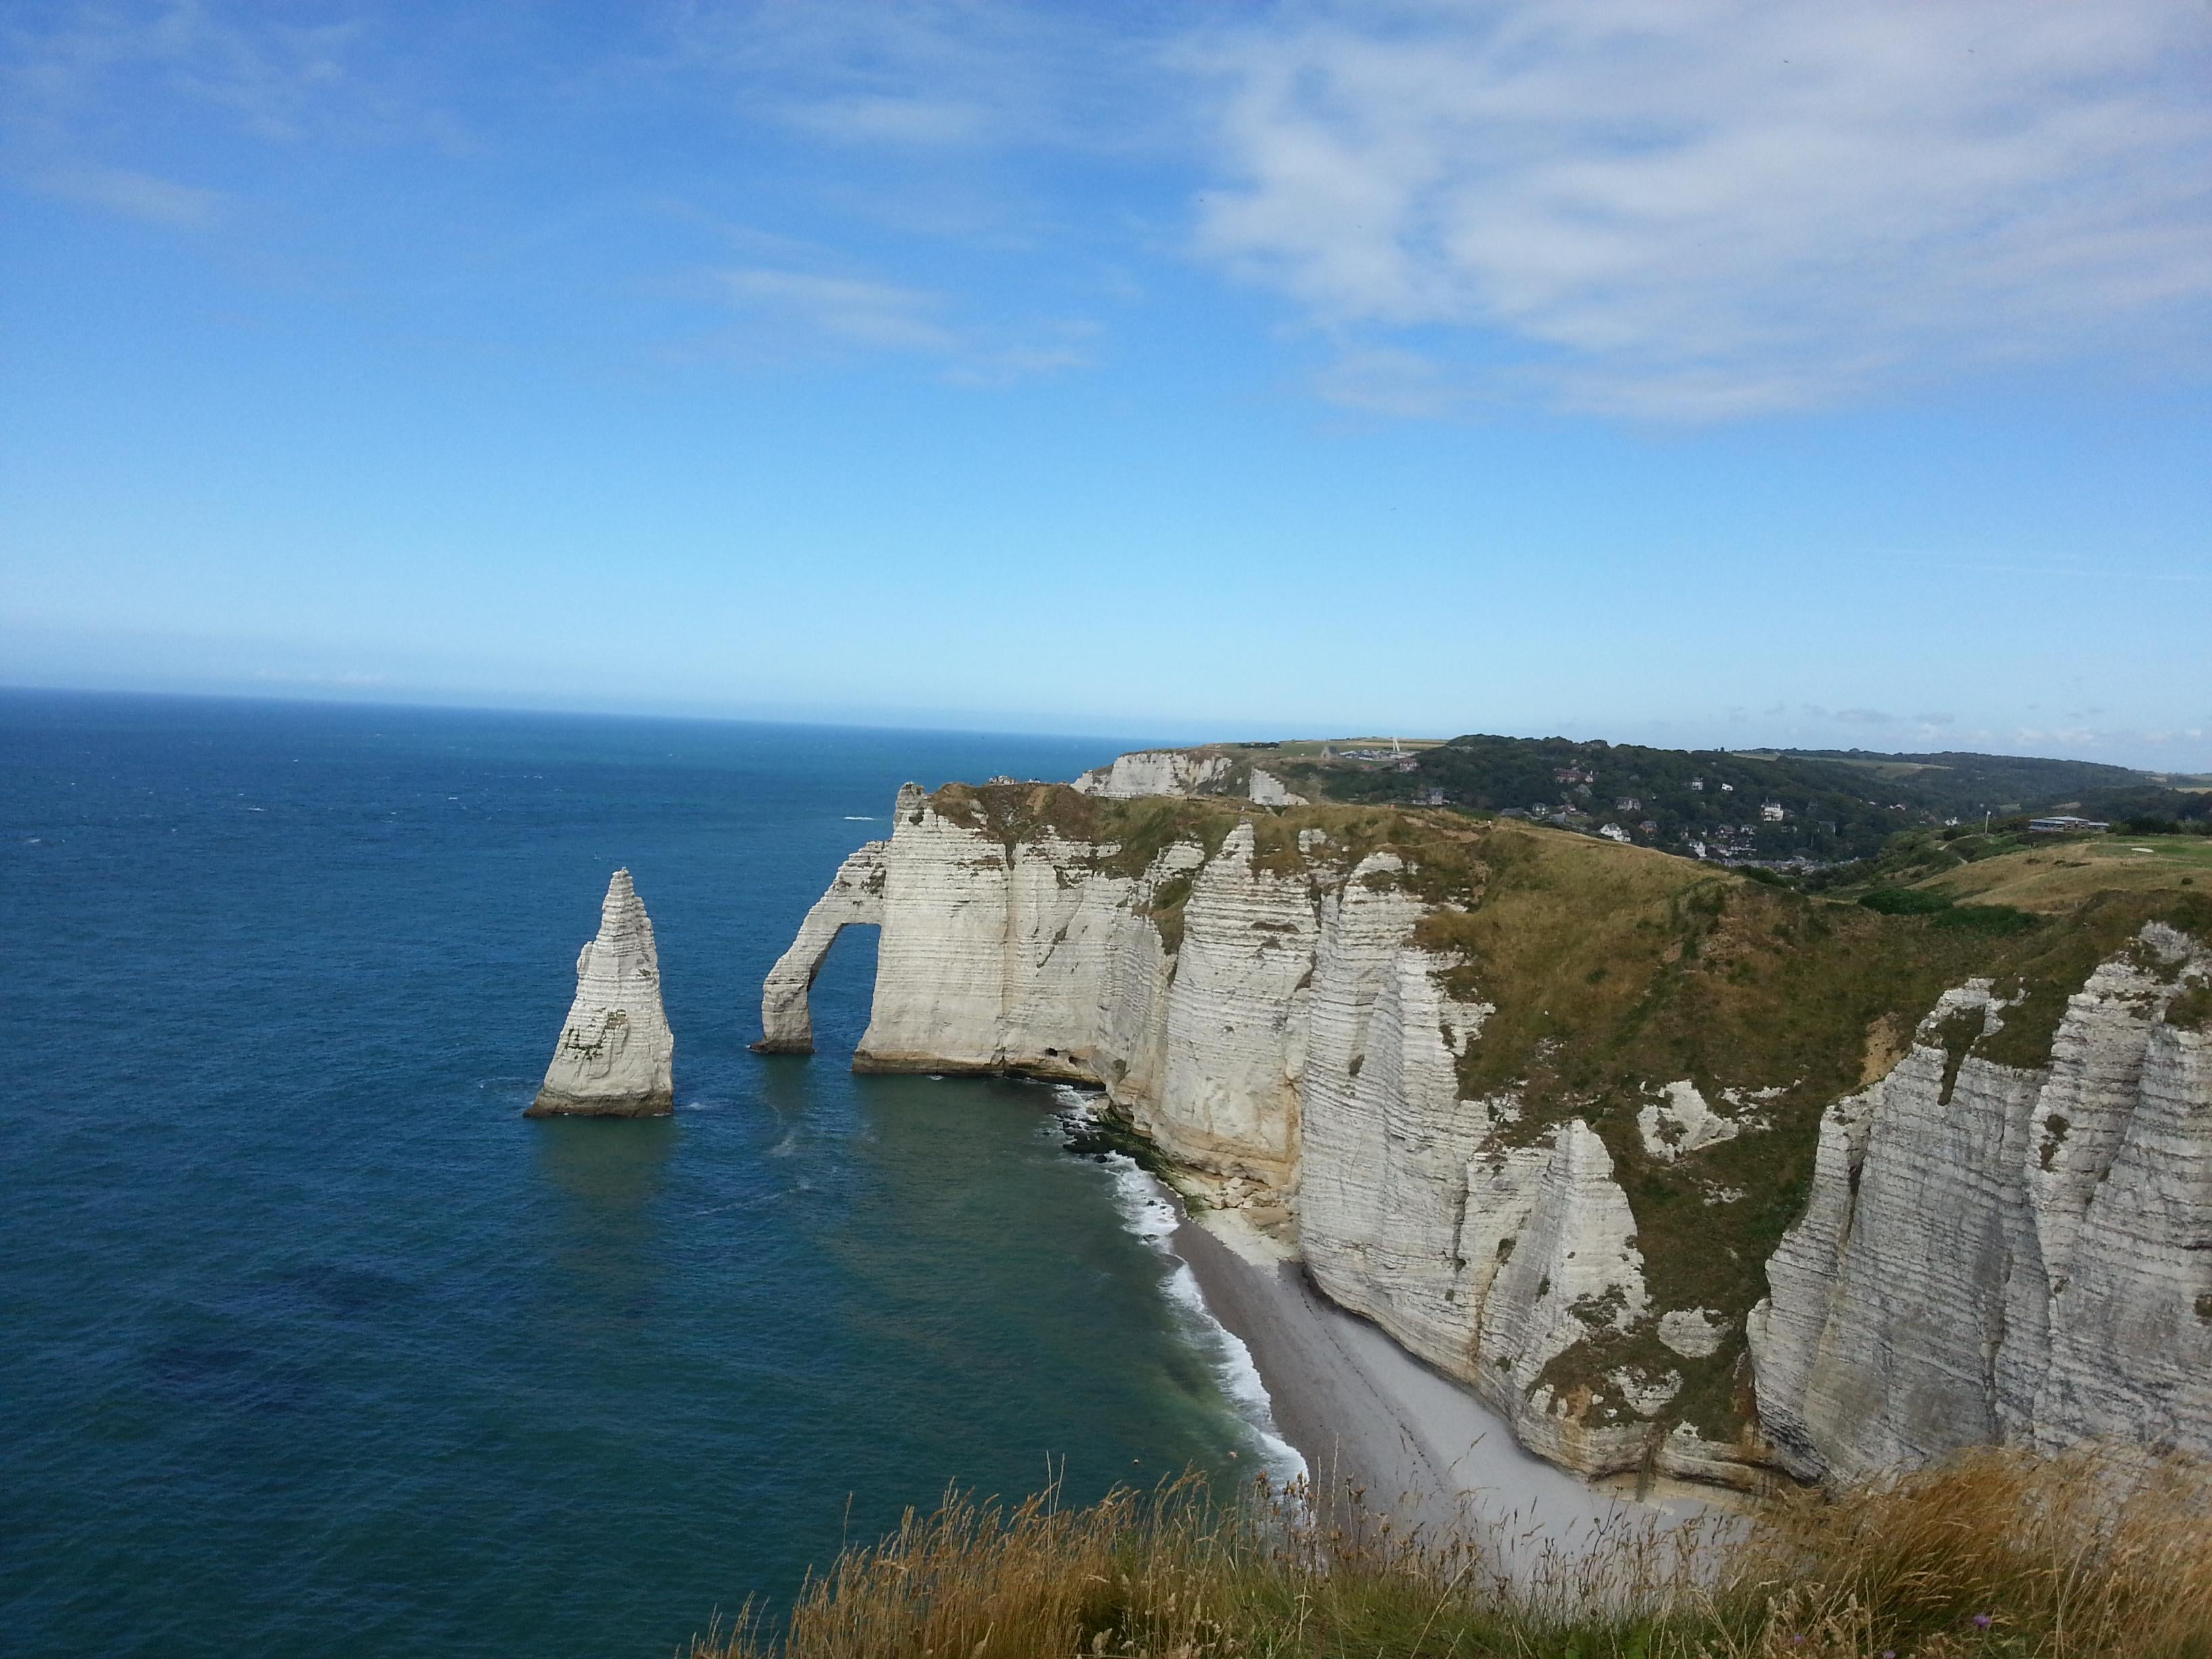 Coast of Etretat